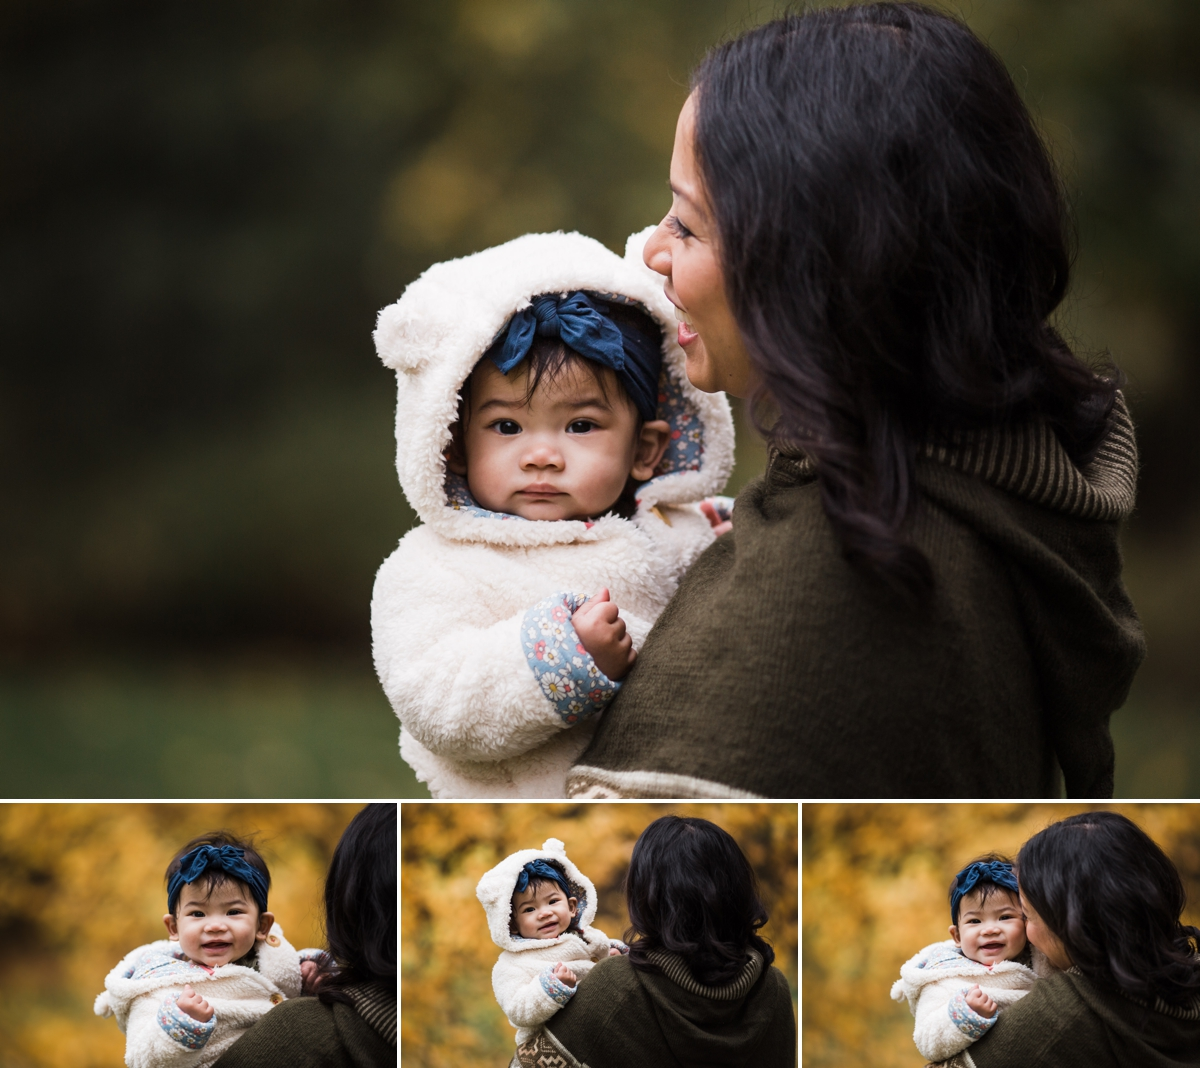 Elena S Blair   Seattle, WA Photographer   Connected and Emotive Family & Newborn Photography